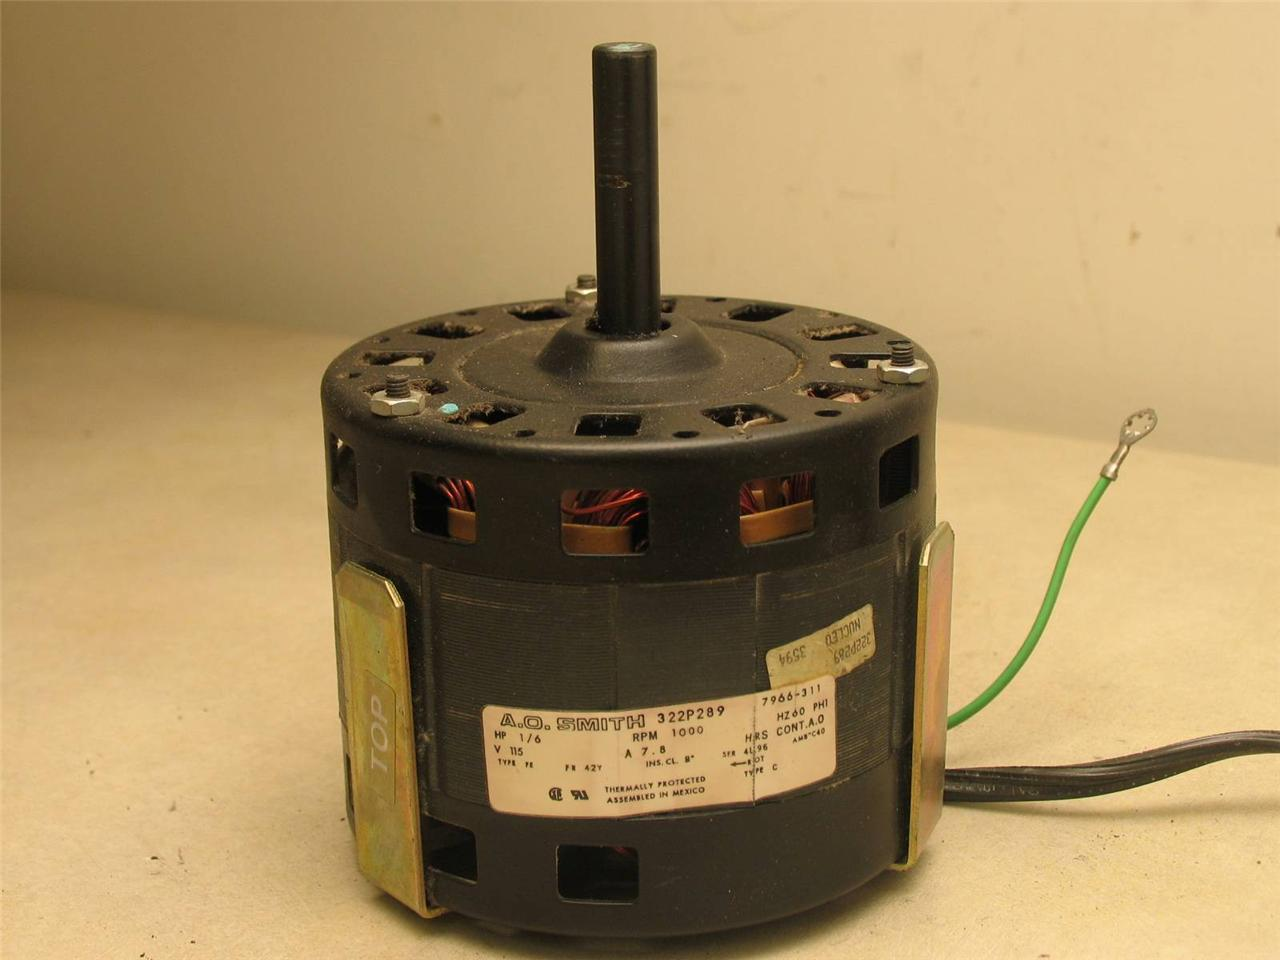 A-O-Smith-7966-311-Furnace-Blower-motor-322P289-1-6HP-1000RPM-1PH-60Hz